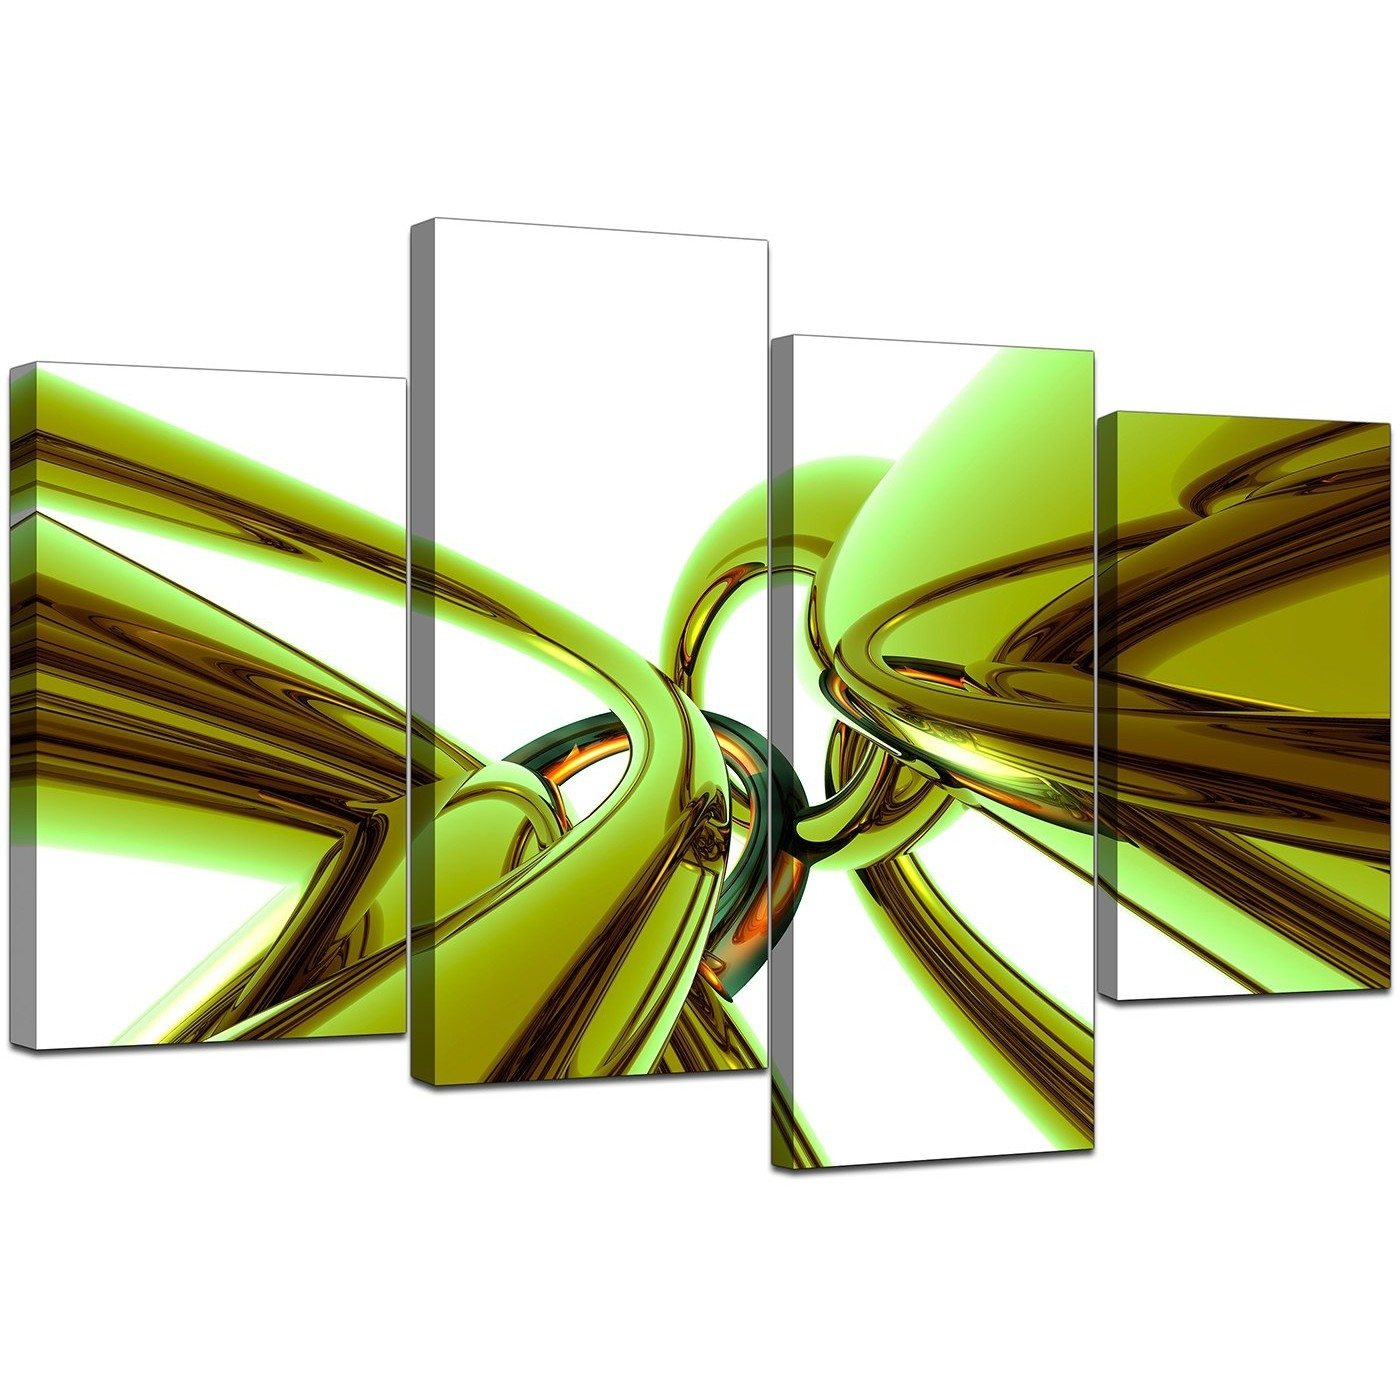 Abstract Canvas Wall Art In Green For Your Living Room – Set Of 4 Pertaining To Newest Green Abstract Wall Art (View 4 of 20)